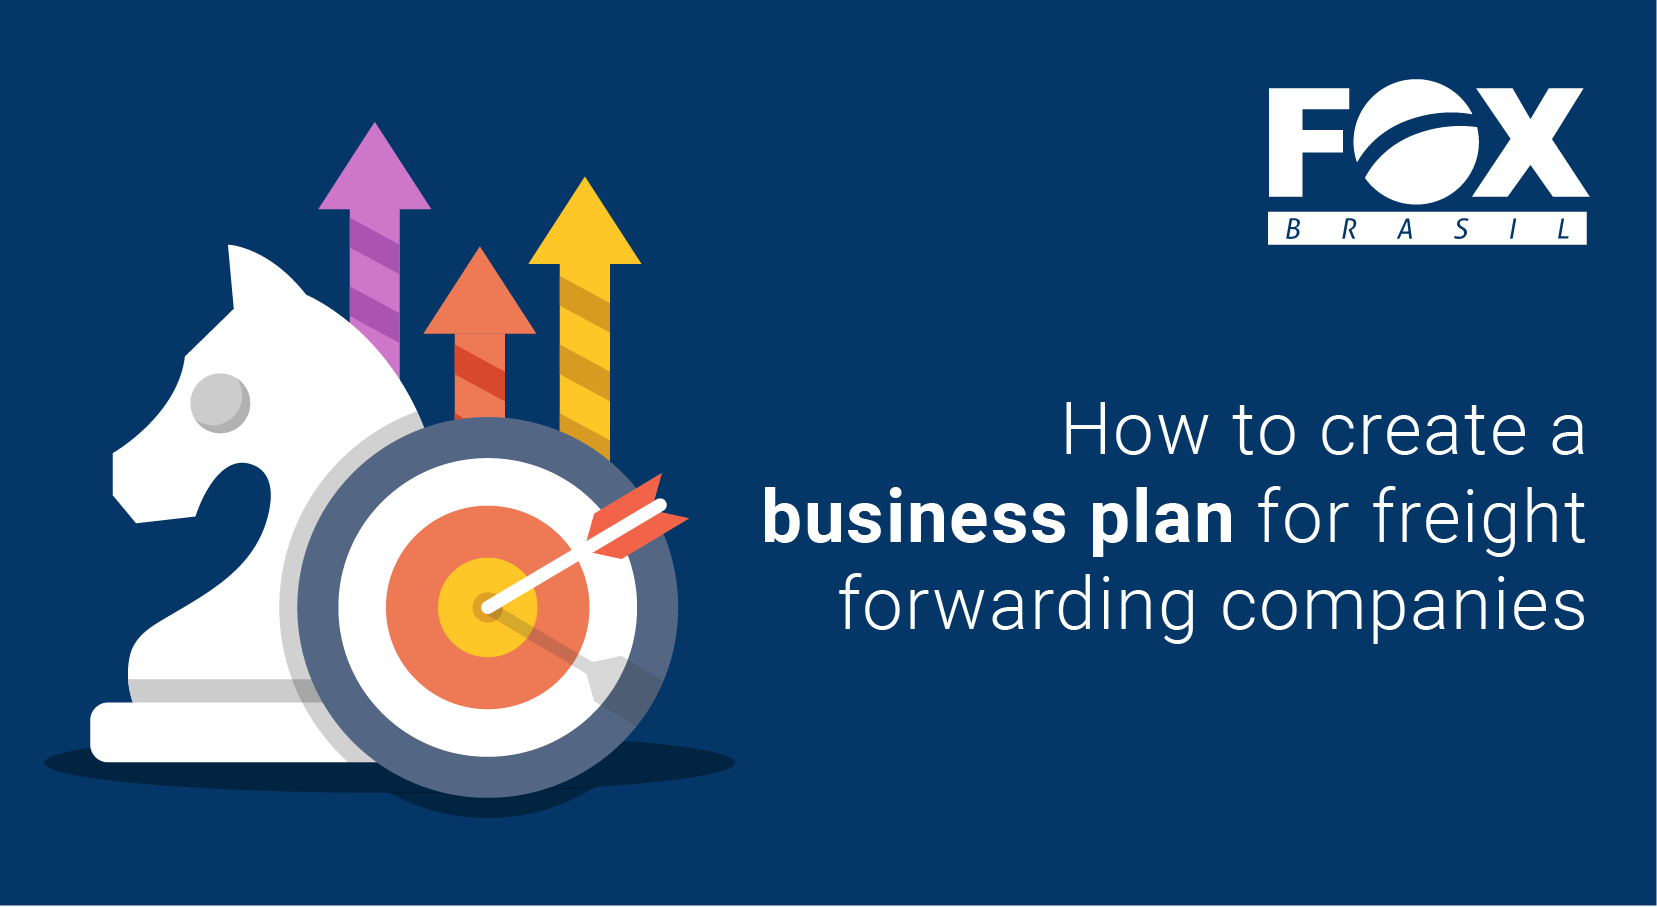 How to create a business plan for freight forwarding